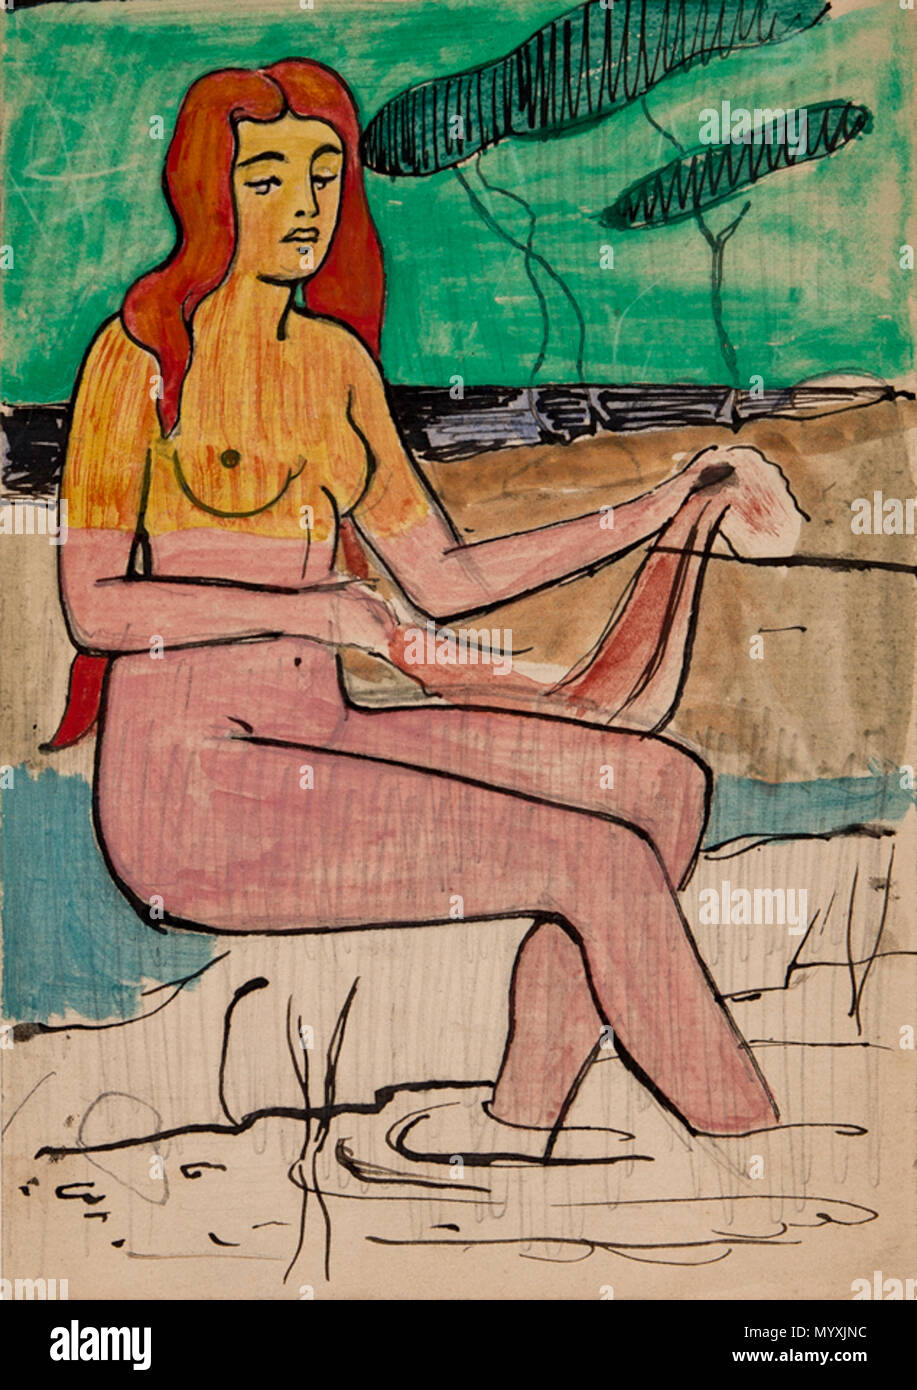 . English: The Bather, possibly Tahitian. Pencil, ink and watercolour on reverse of form advertising violin lessons given by Leonard Forbes-Robertson, 25 Charlotte Street. Circa 1893. Provenance: Artist's family descent. 6.5x4.5 inches.  . after 1936.   Eric Forbes-Robertson (1865–1935)  Alternative names Eric J. Forbes-Robertson; Eric Robertson; Eric Forbes Robertson; Eric Forbes- Robertson  Description painter  Date of birth/death 1865 1935  Work location London  Authority control  : Q5386499 VIAF:?96603147 ULAN:?500124855 RKD:?28604 34 Forbes-Robertson-9511 - Stock Image